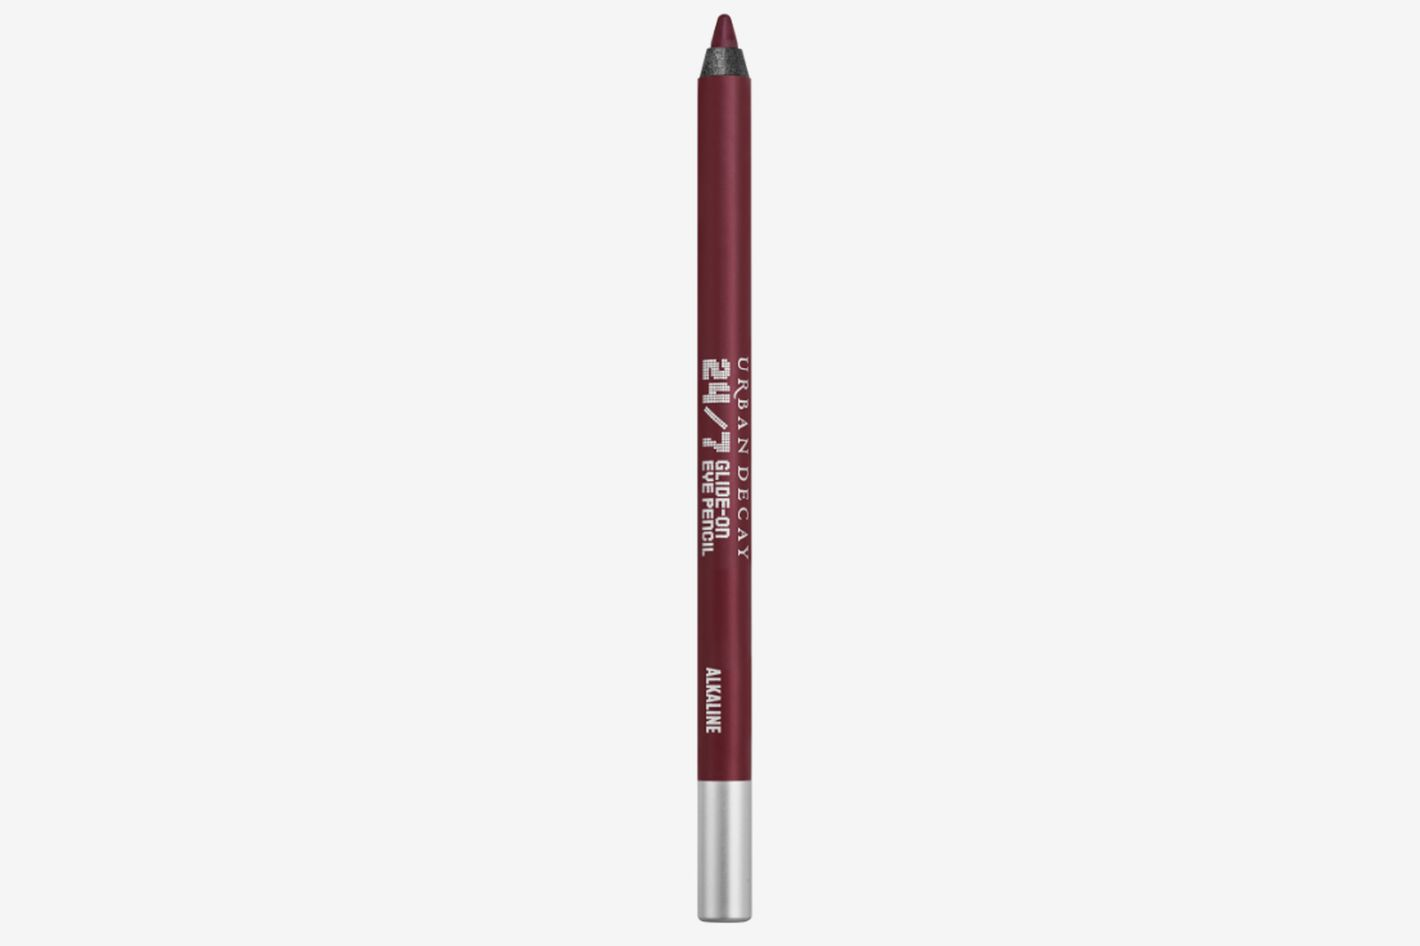 Naked Heat 24/7 Glide-On Eye Pencil Alkaline